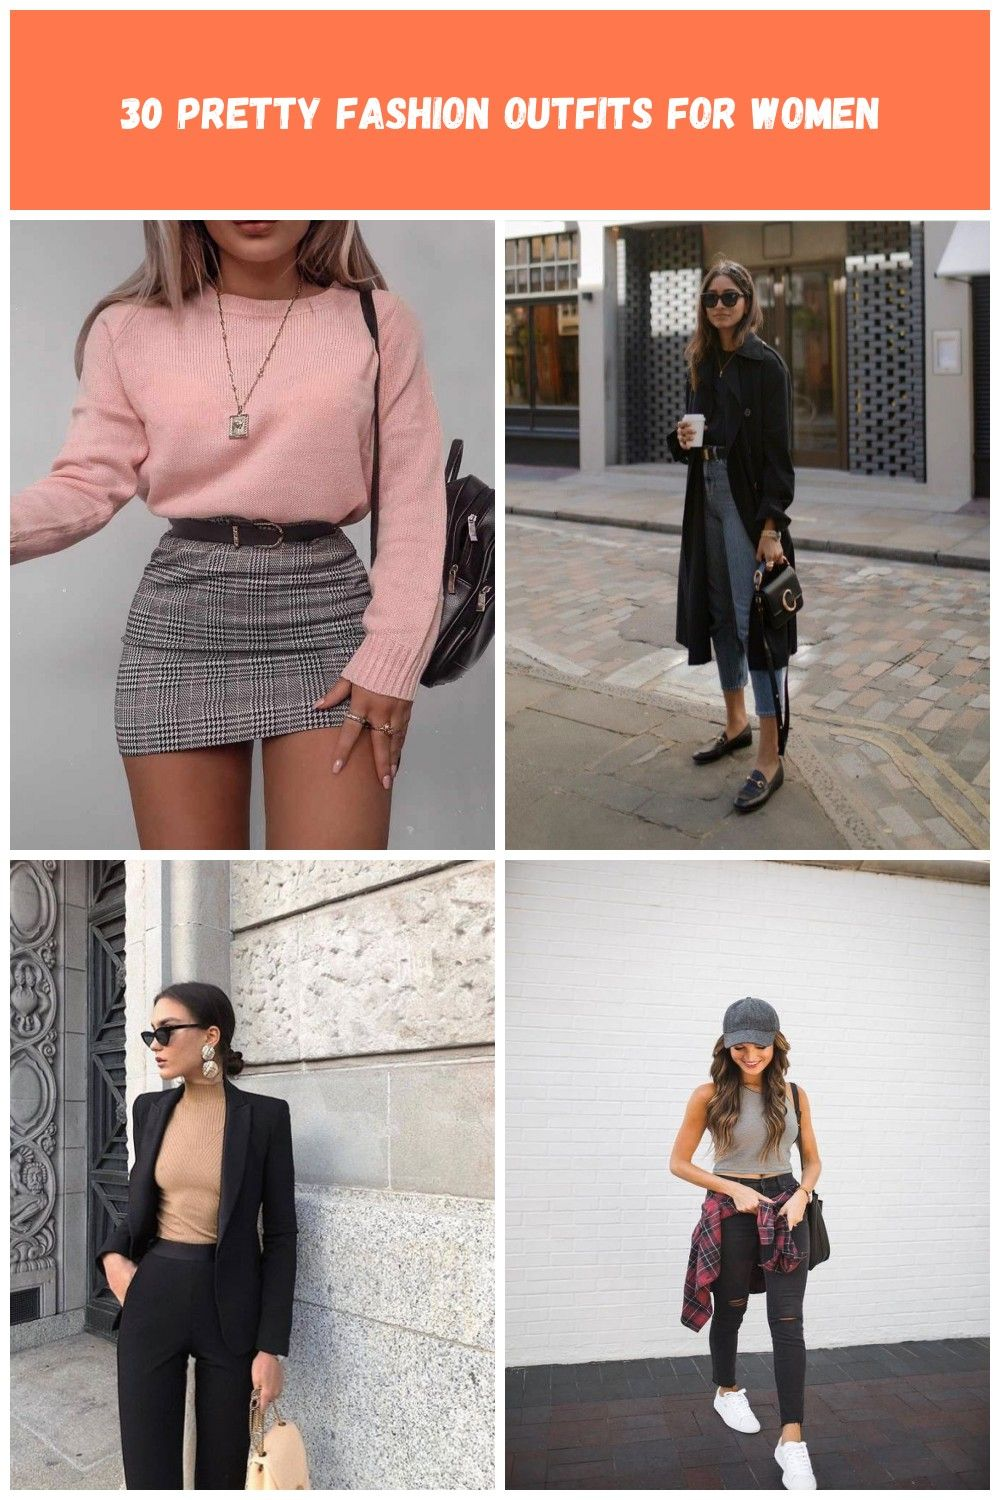 Plaid Skirt With Pink Sweater #plaidskirt #miniskirt ★ Cute casual back to school outfits for teens, highschool and for college, to make your first day of school unforgettable!  ★ #backtoschooloutfits #schooloutfits #schoolstyle #outfitsforschool #sexylook #casuallook #glaminati modetrends #firstdayofschooloutfits